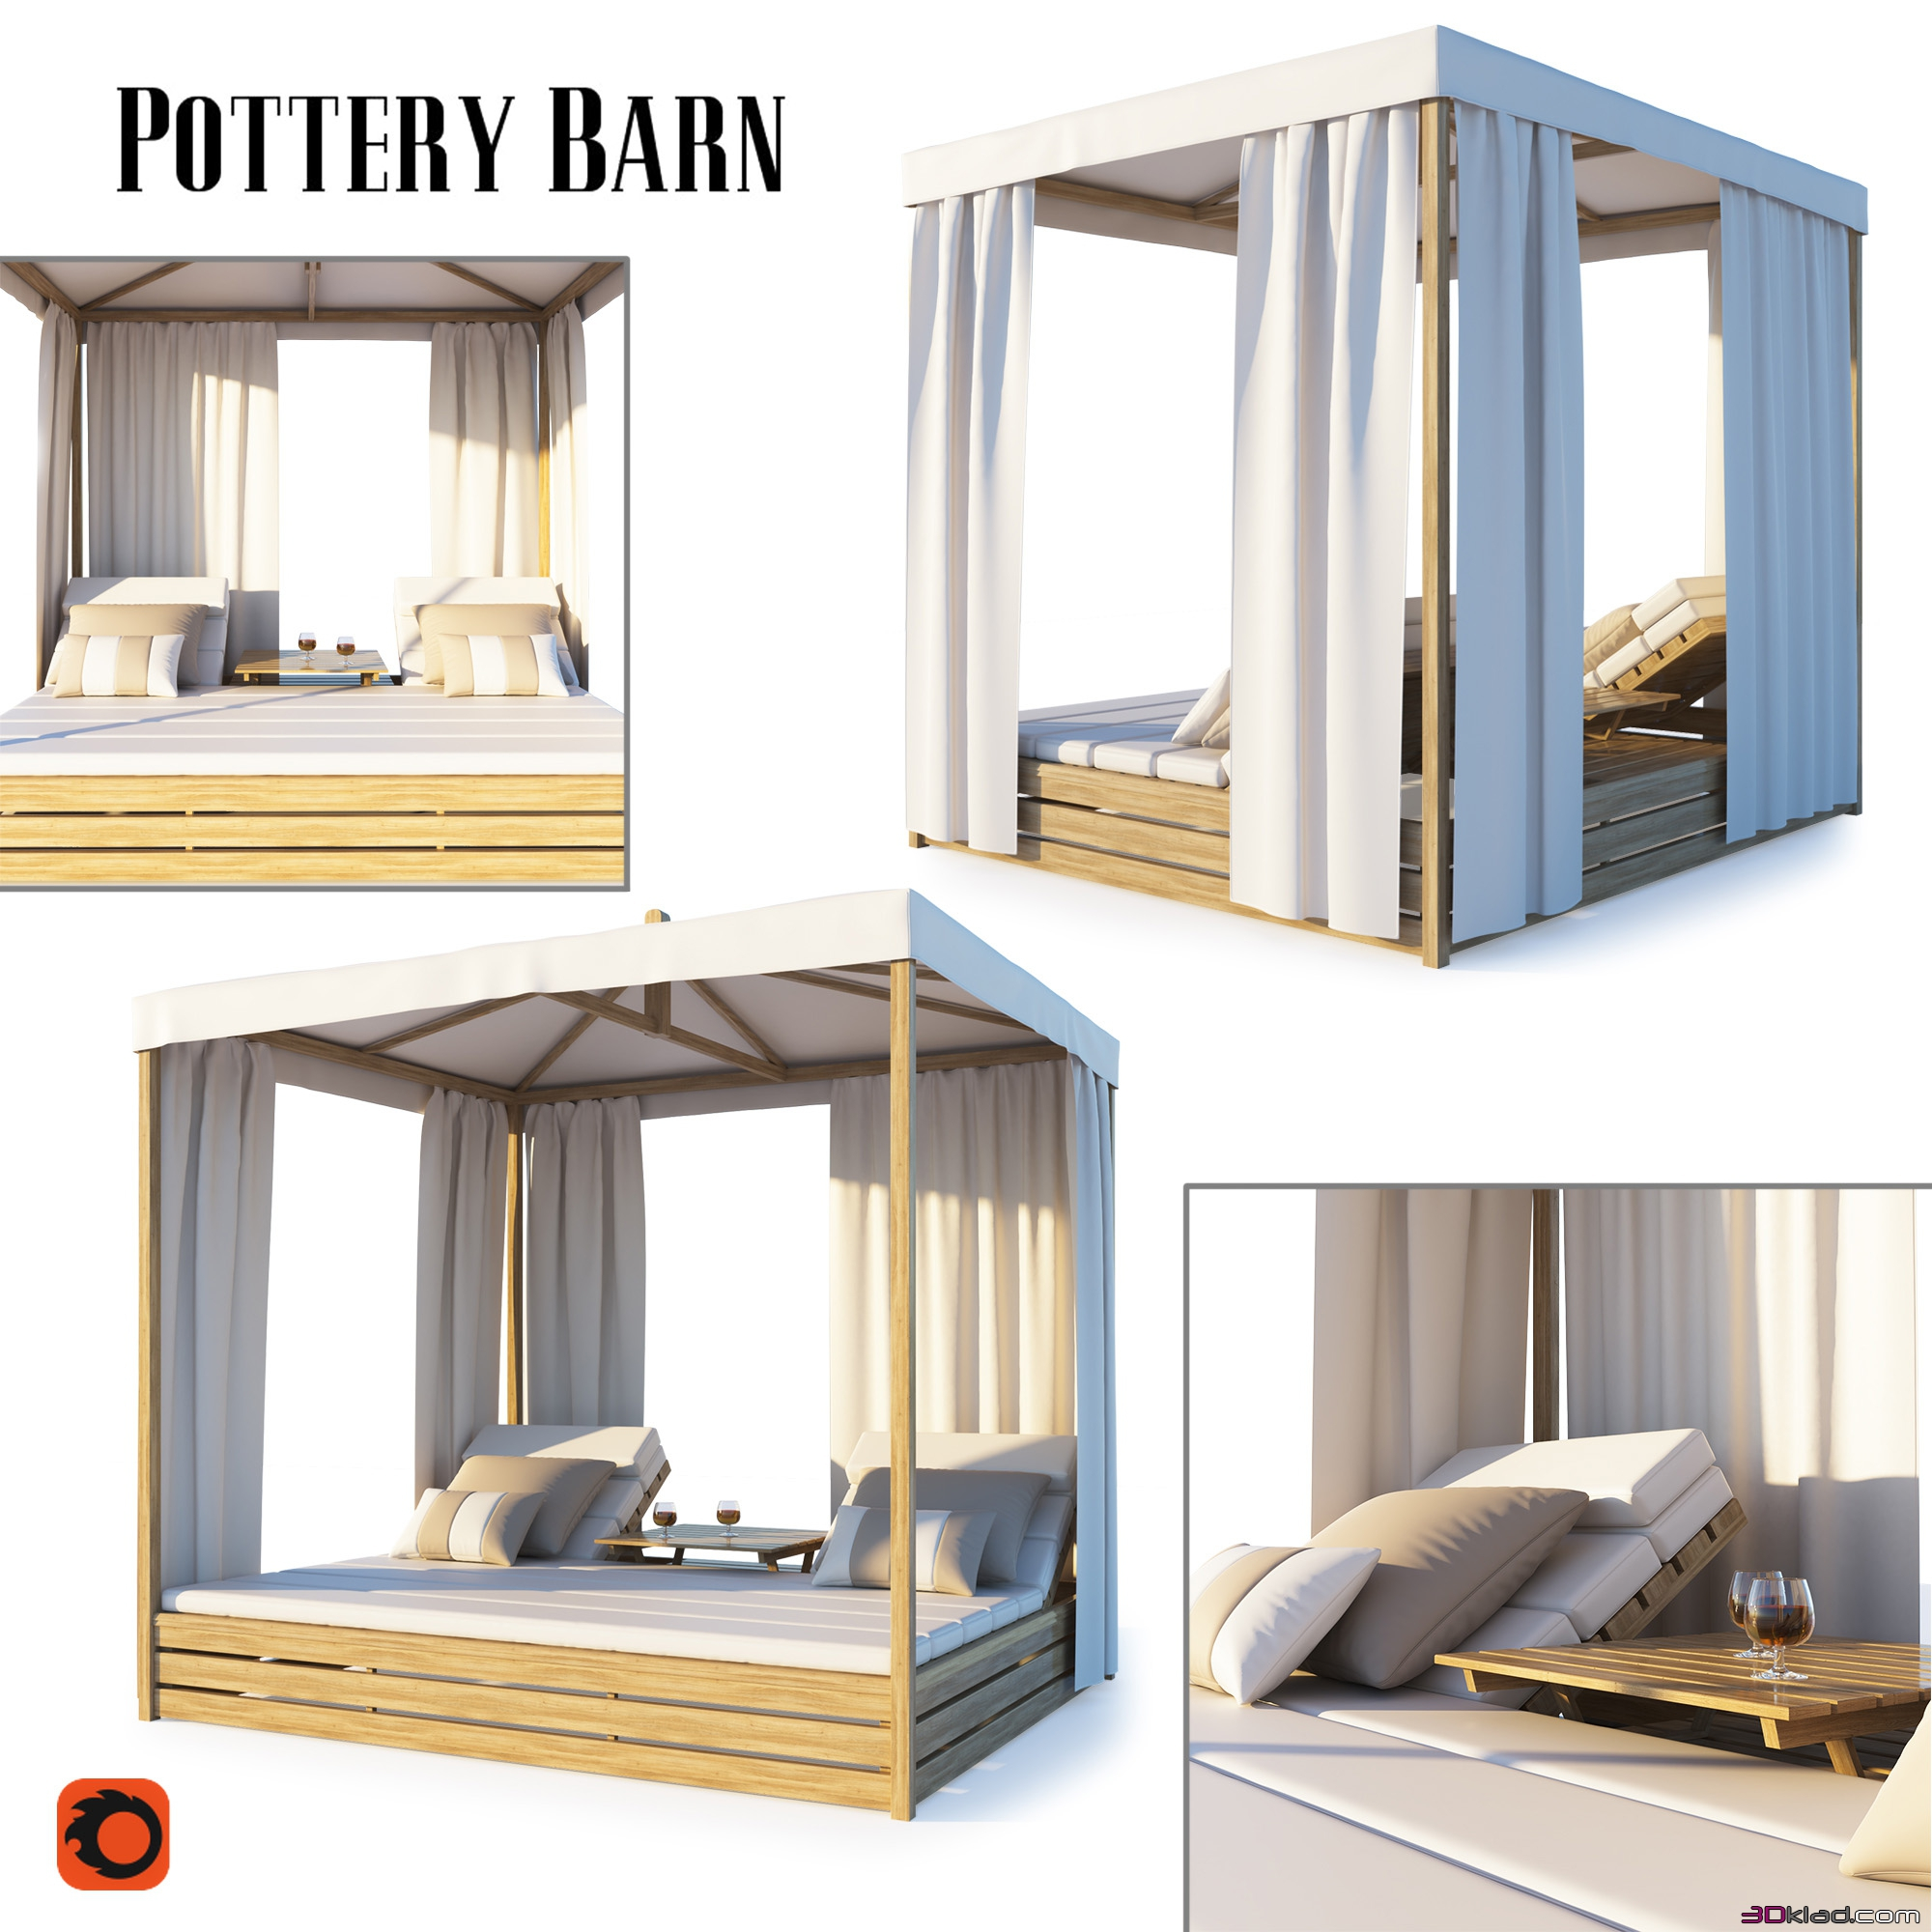 pattern covers full linens plated day of coastal pottery daybed boys clocks comforters sleeping pokemon quilt sew barn set barns size matelasse cards bags gold cover bed for bedding